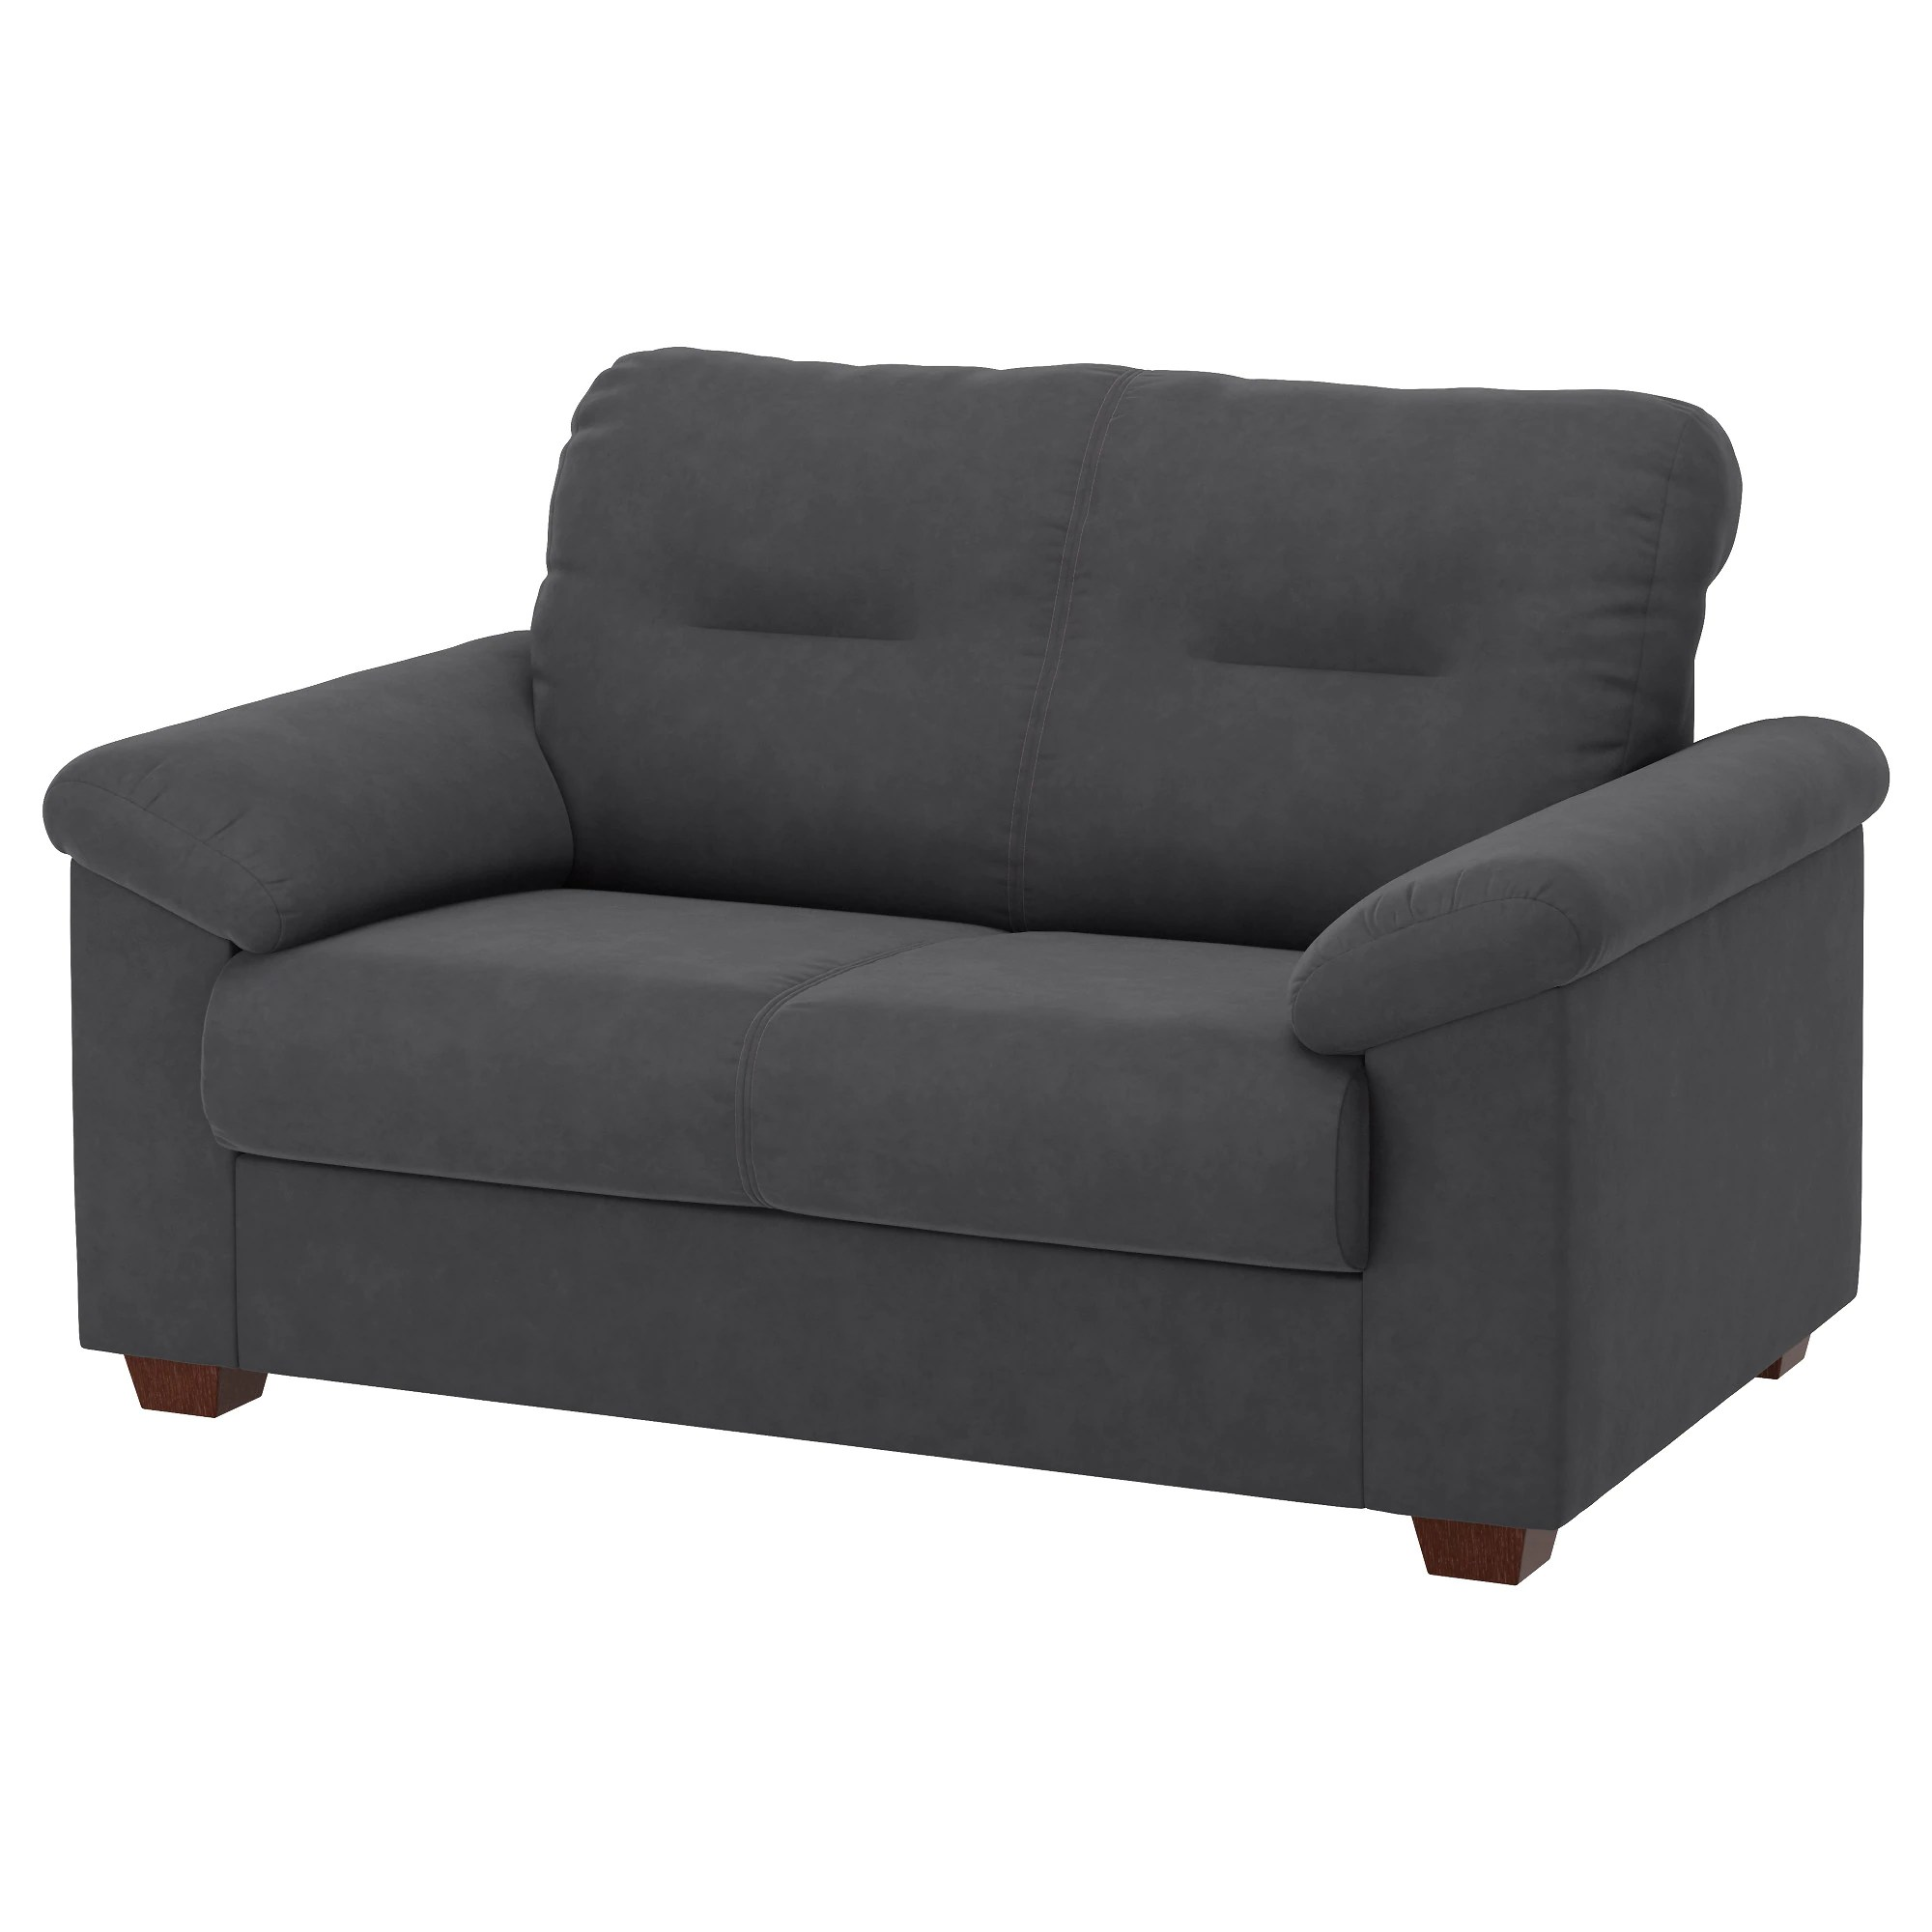 Loveseat Ikea Knislinge Loveseat Samsta Dark Brown